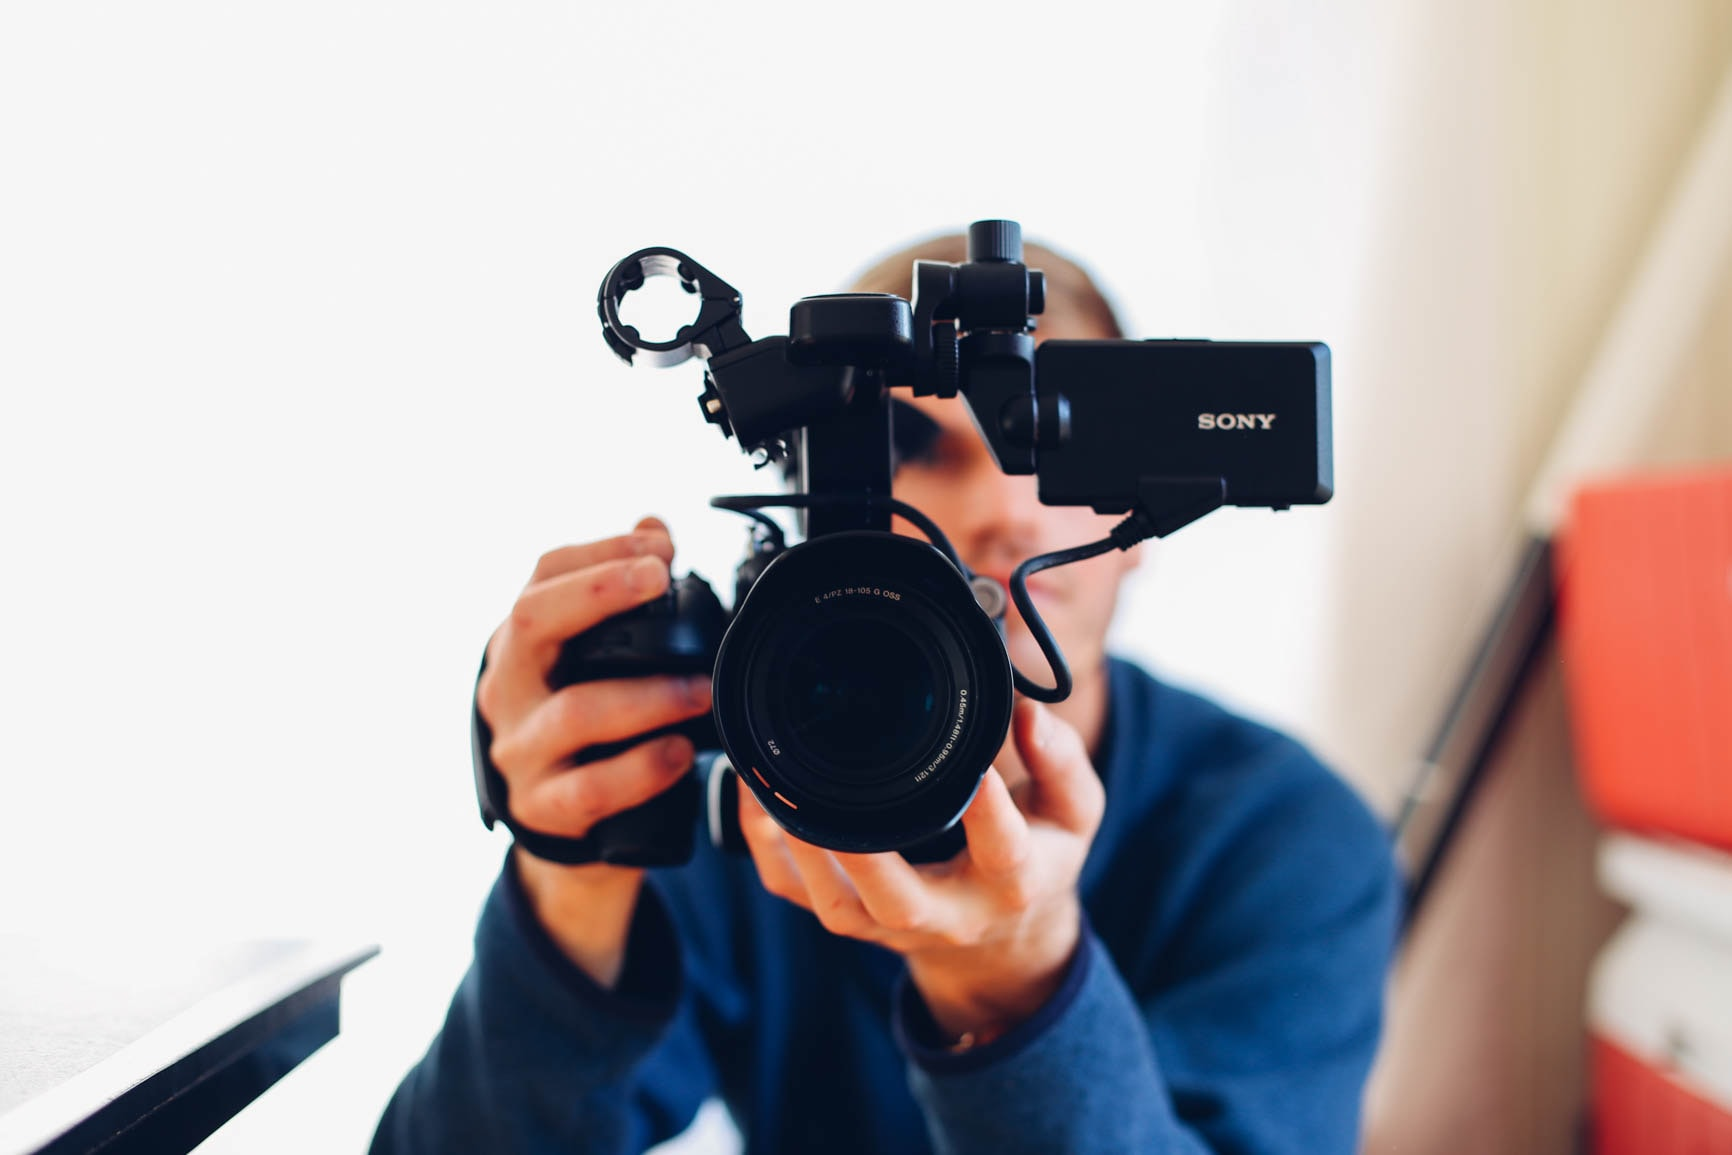 A man holding a Sony video camera